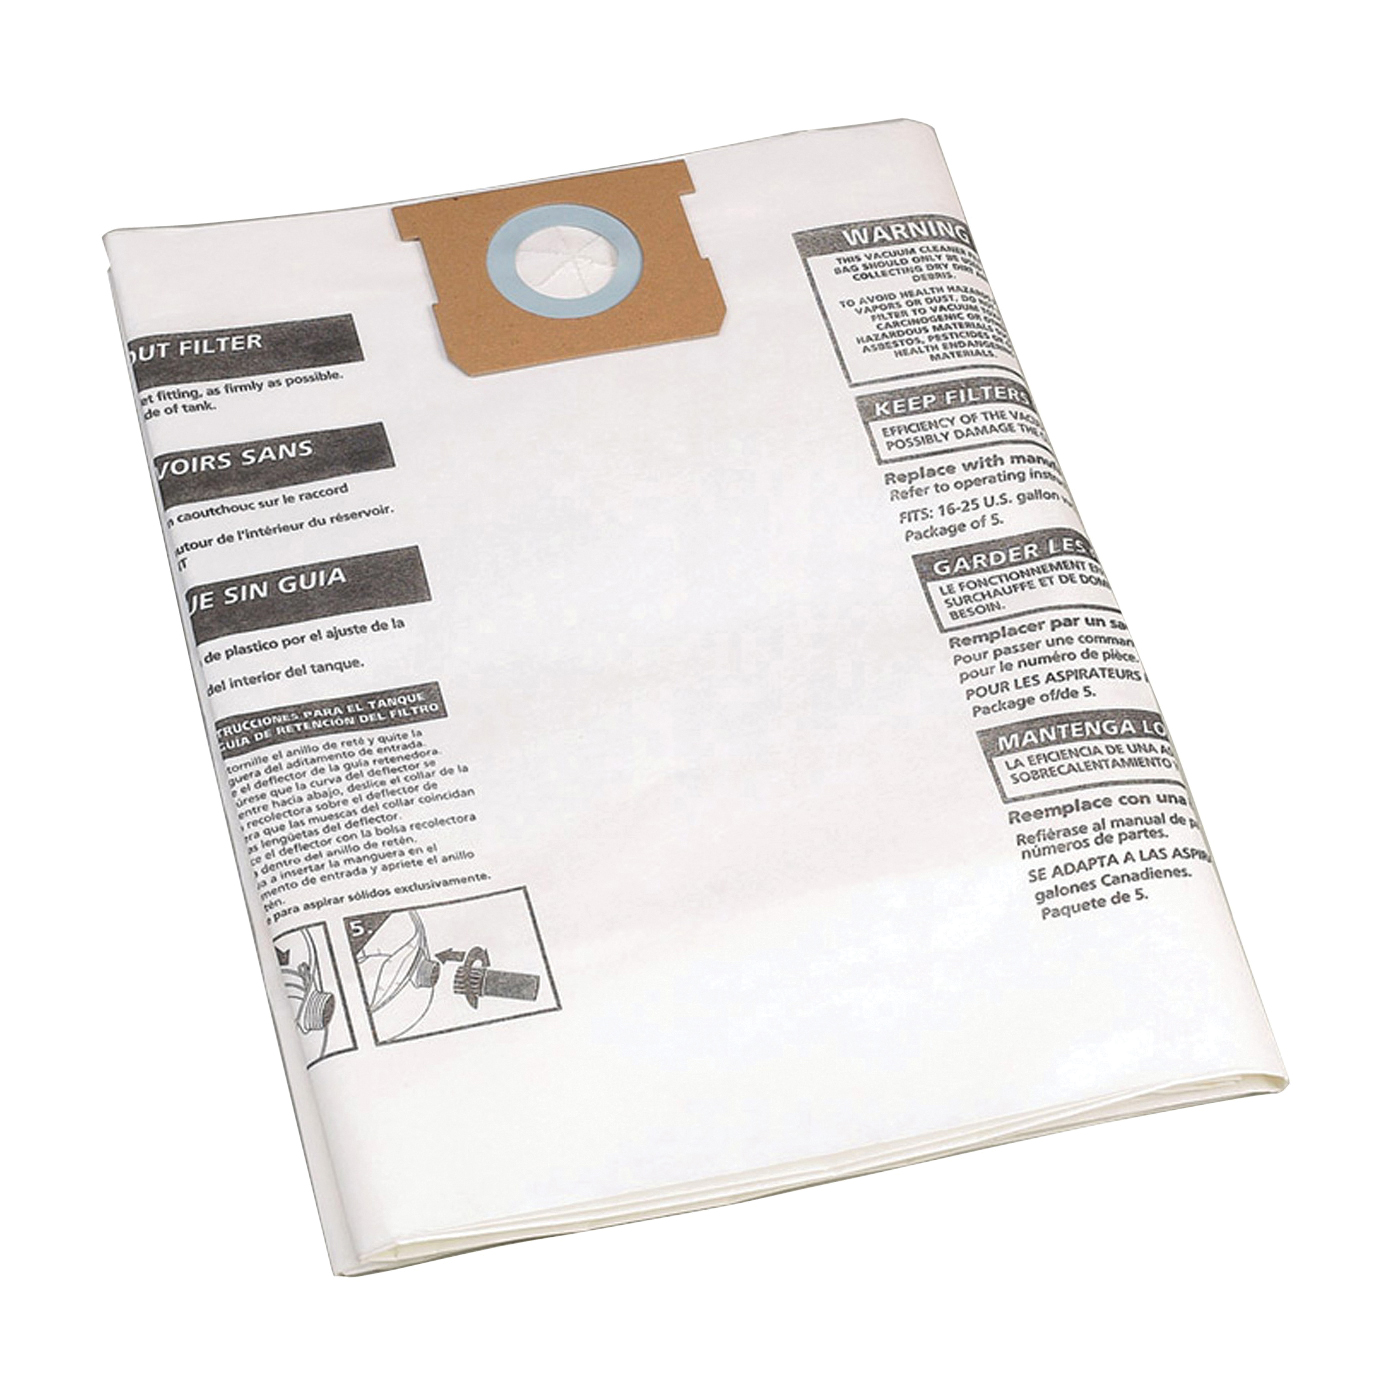 Picture of Shop-Vac 9066300 Filter Bag, 15 to 22 gal Capacity